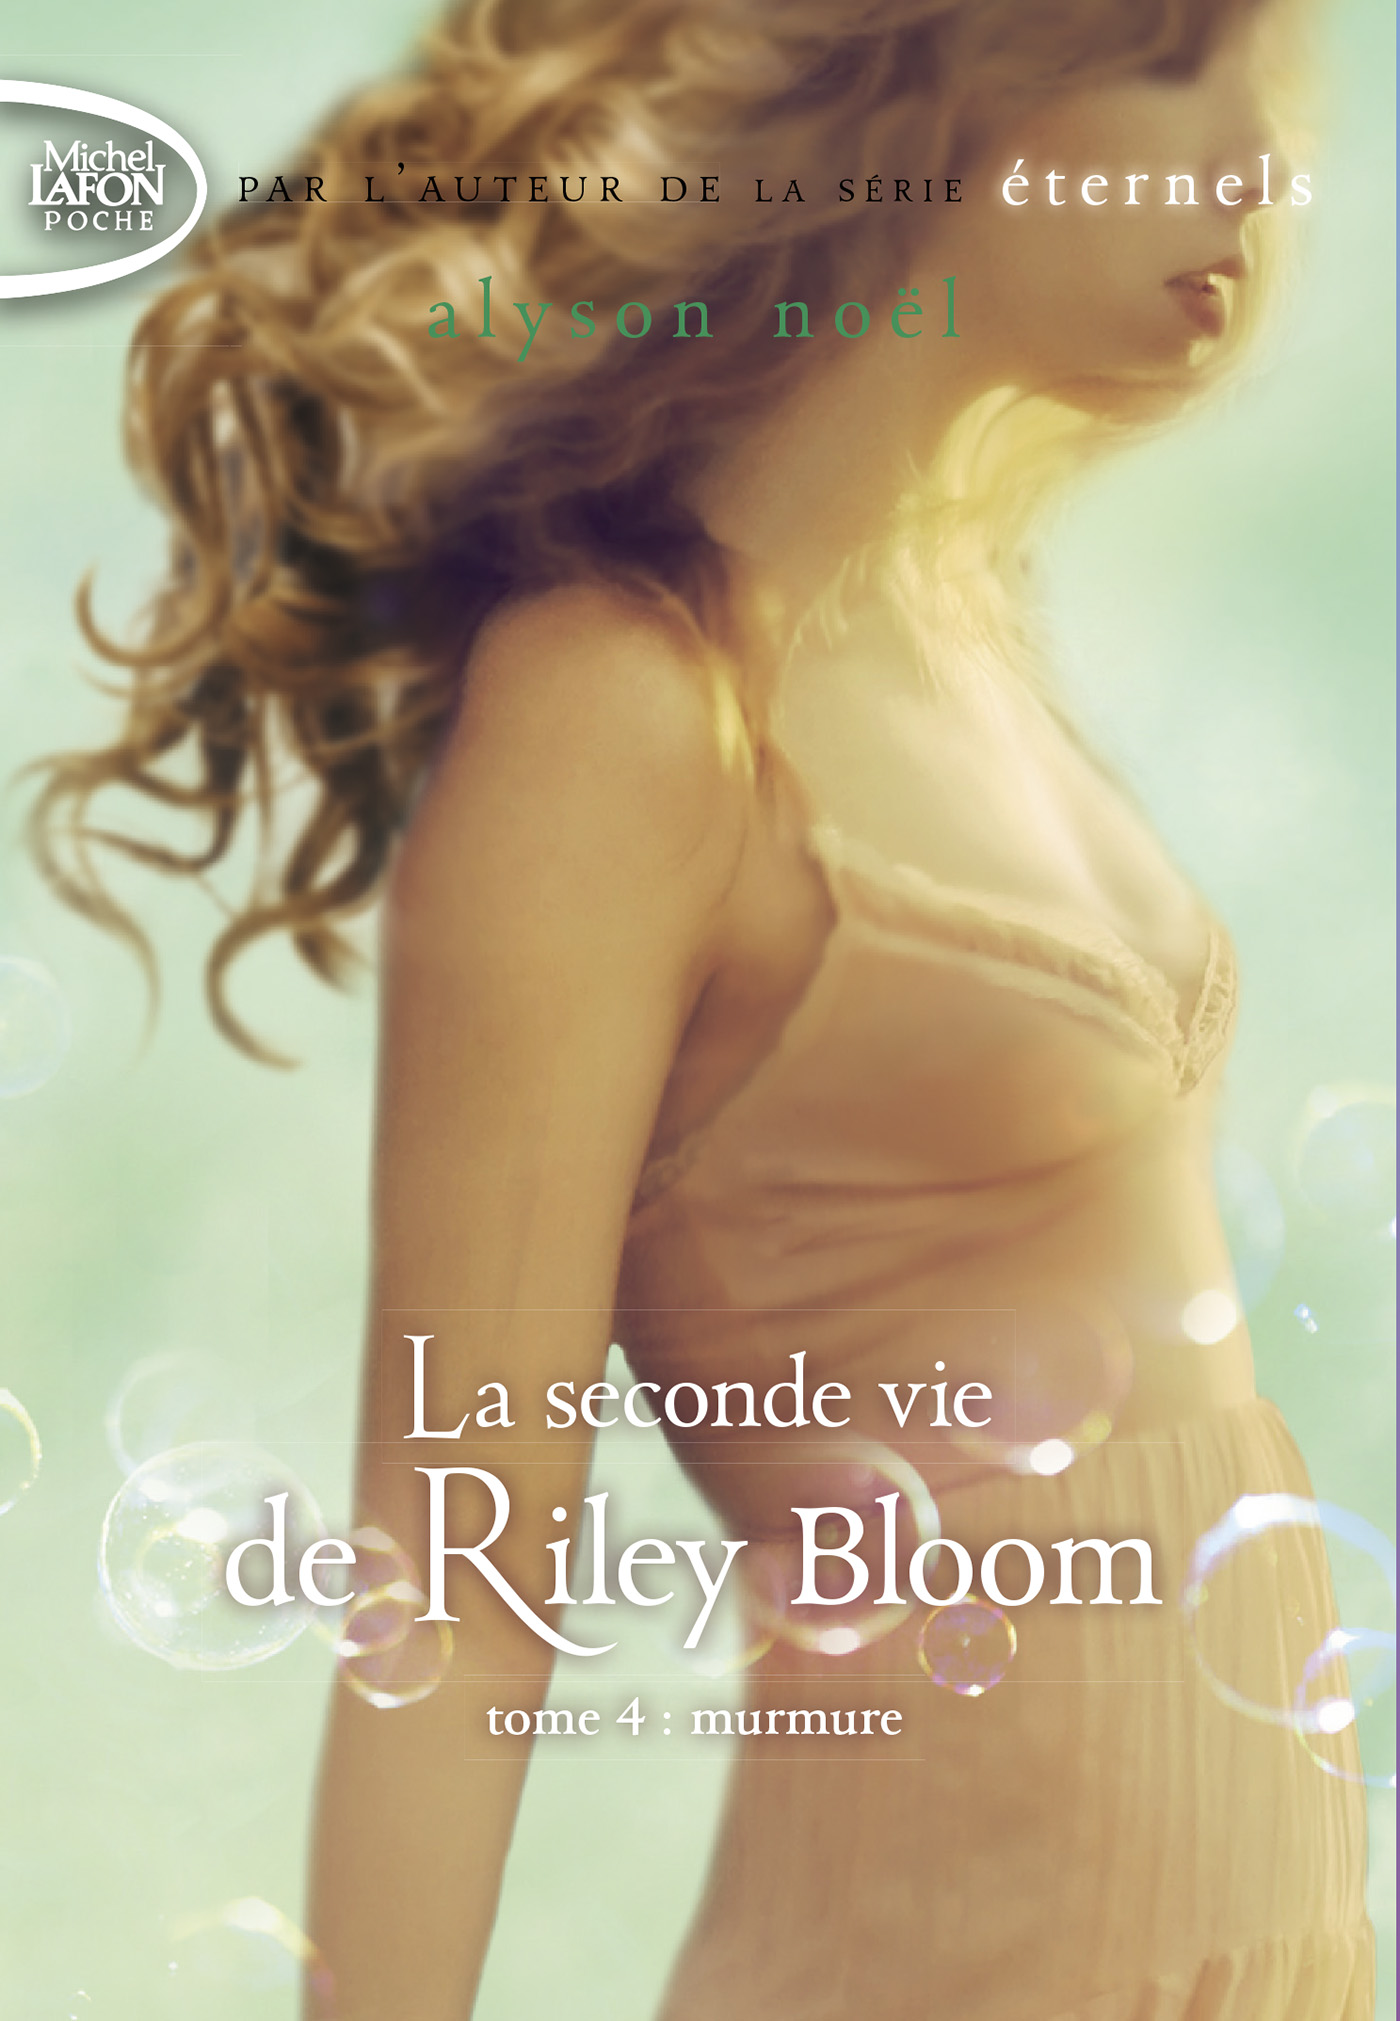 La Seconde Vie de Riley Bloom – Tome 4 : murmure